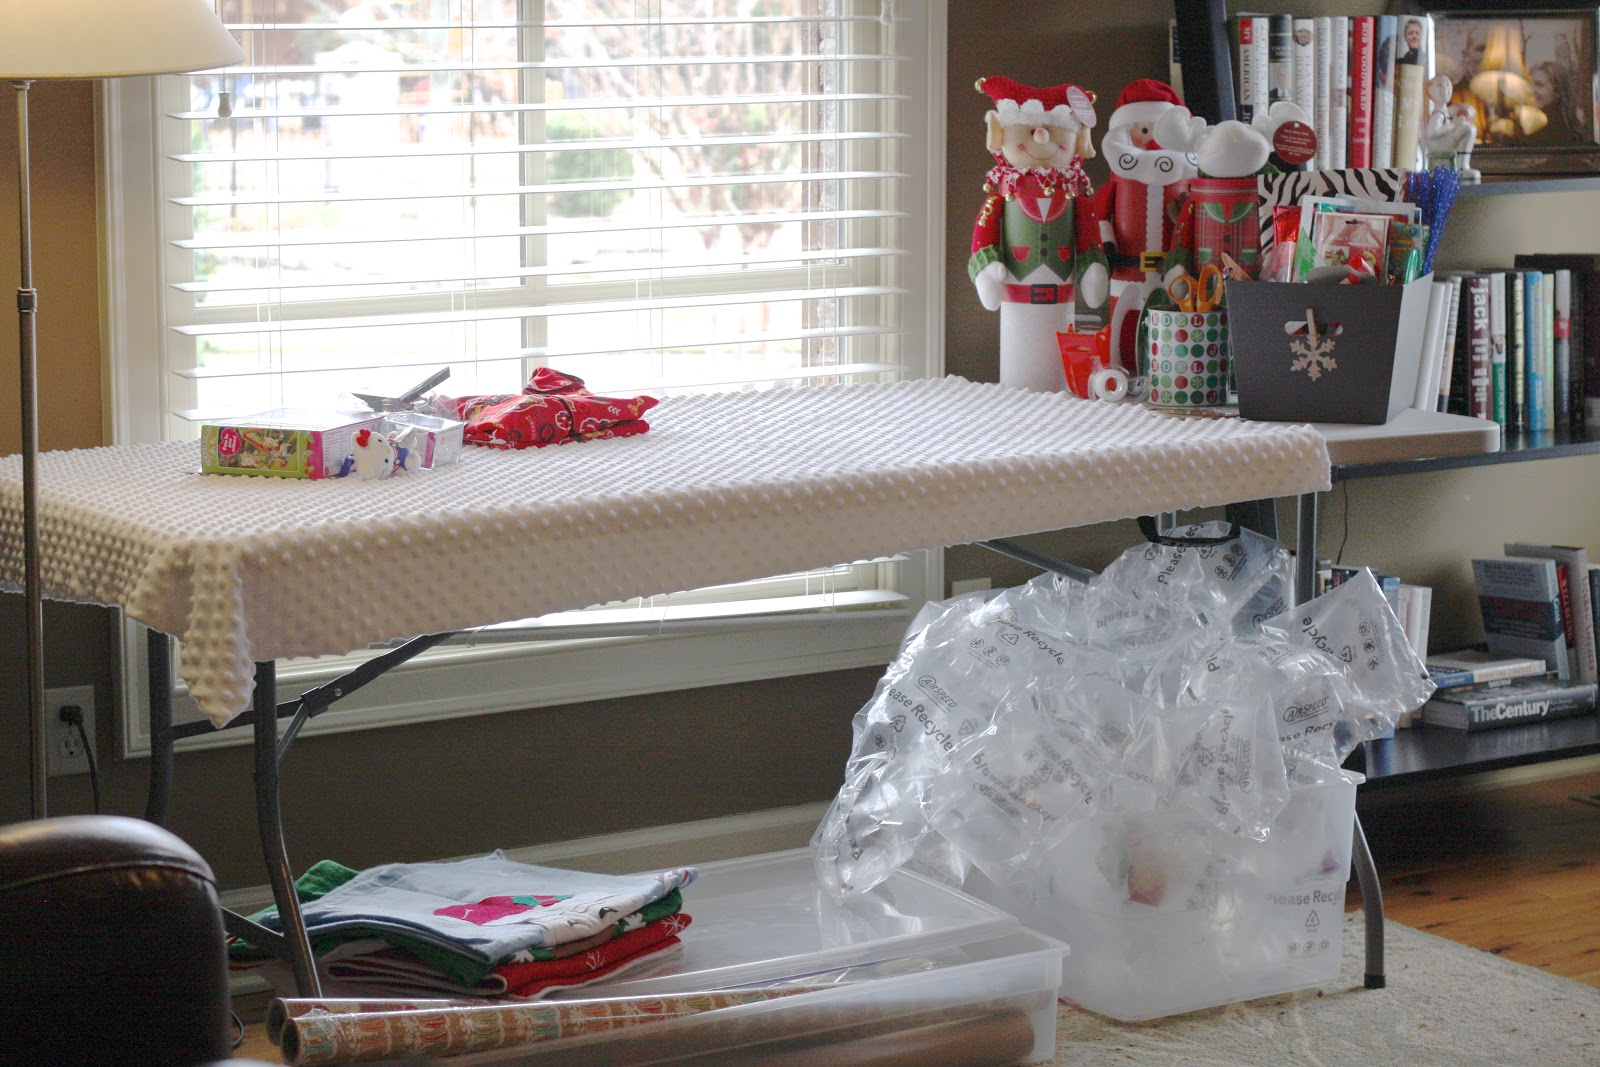 Organized Gift Wrap Station